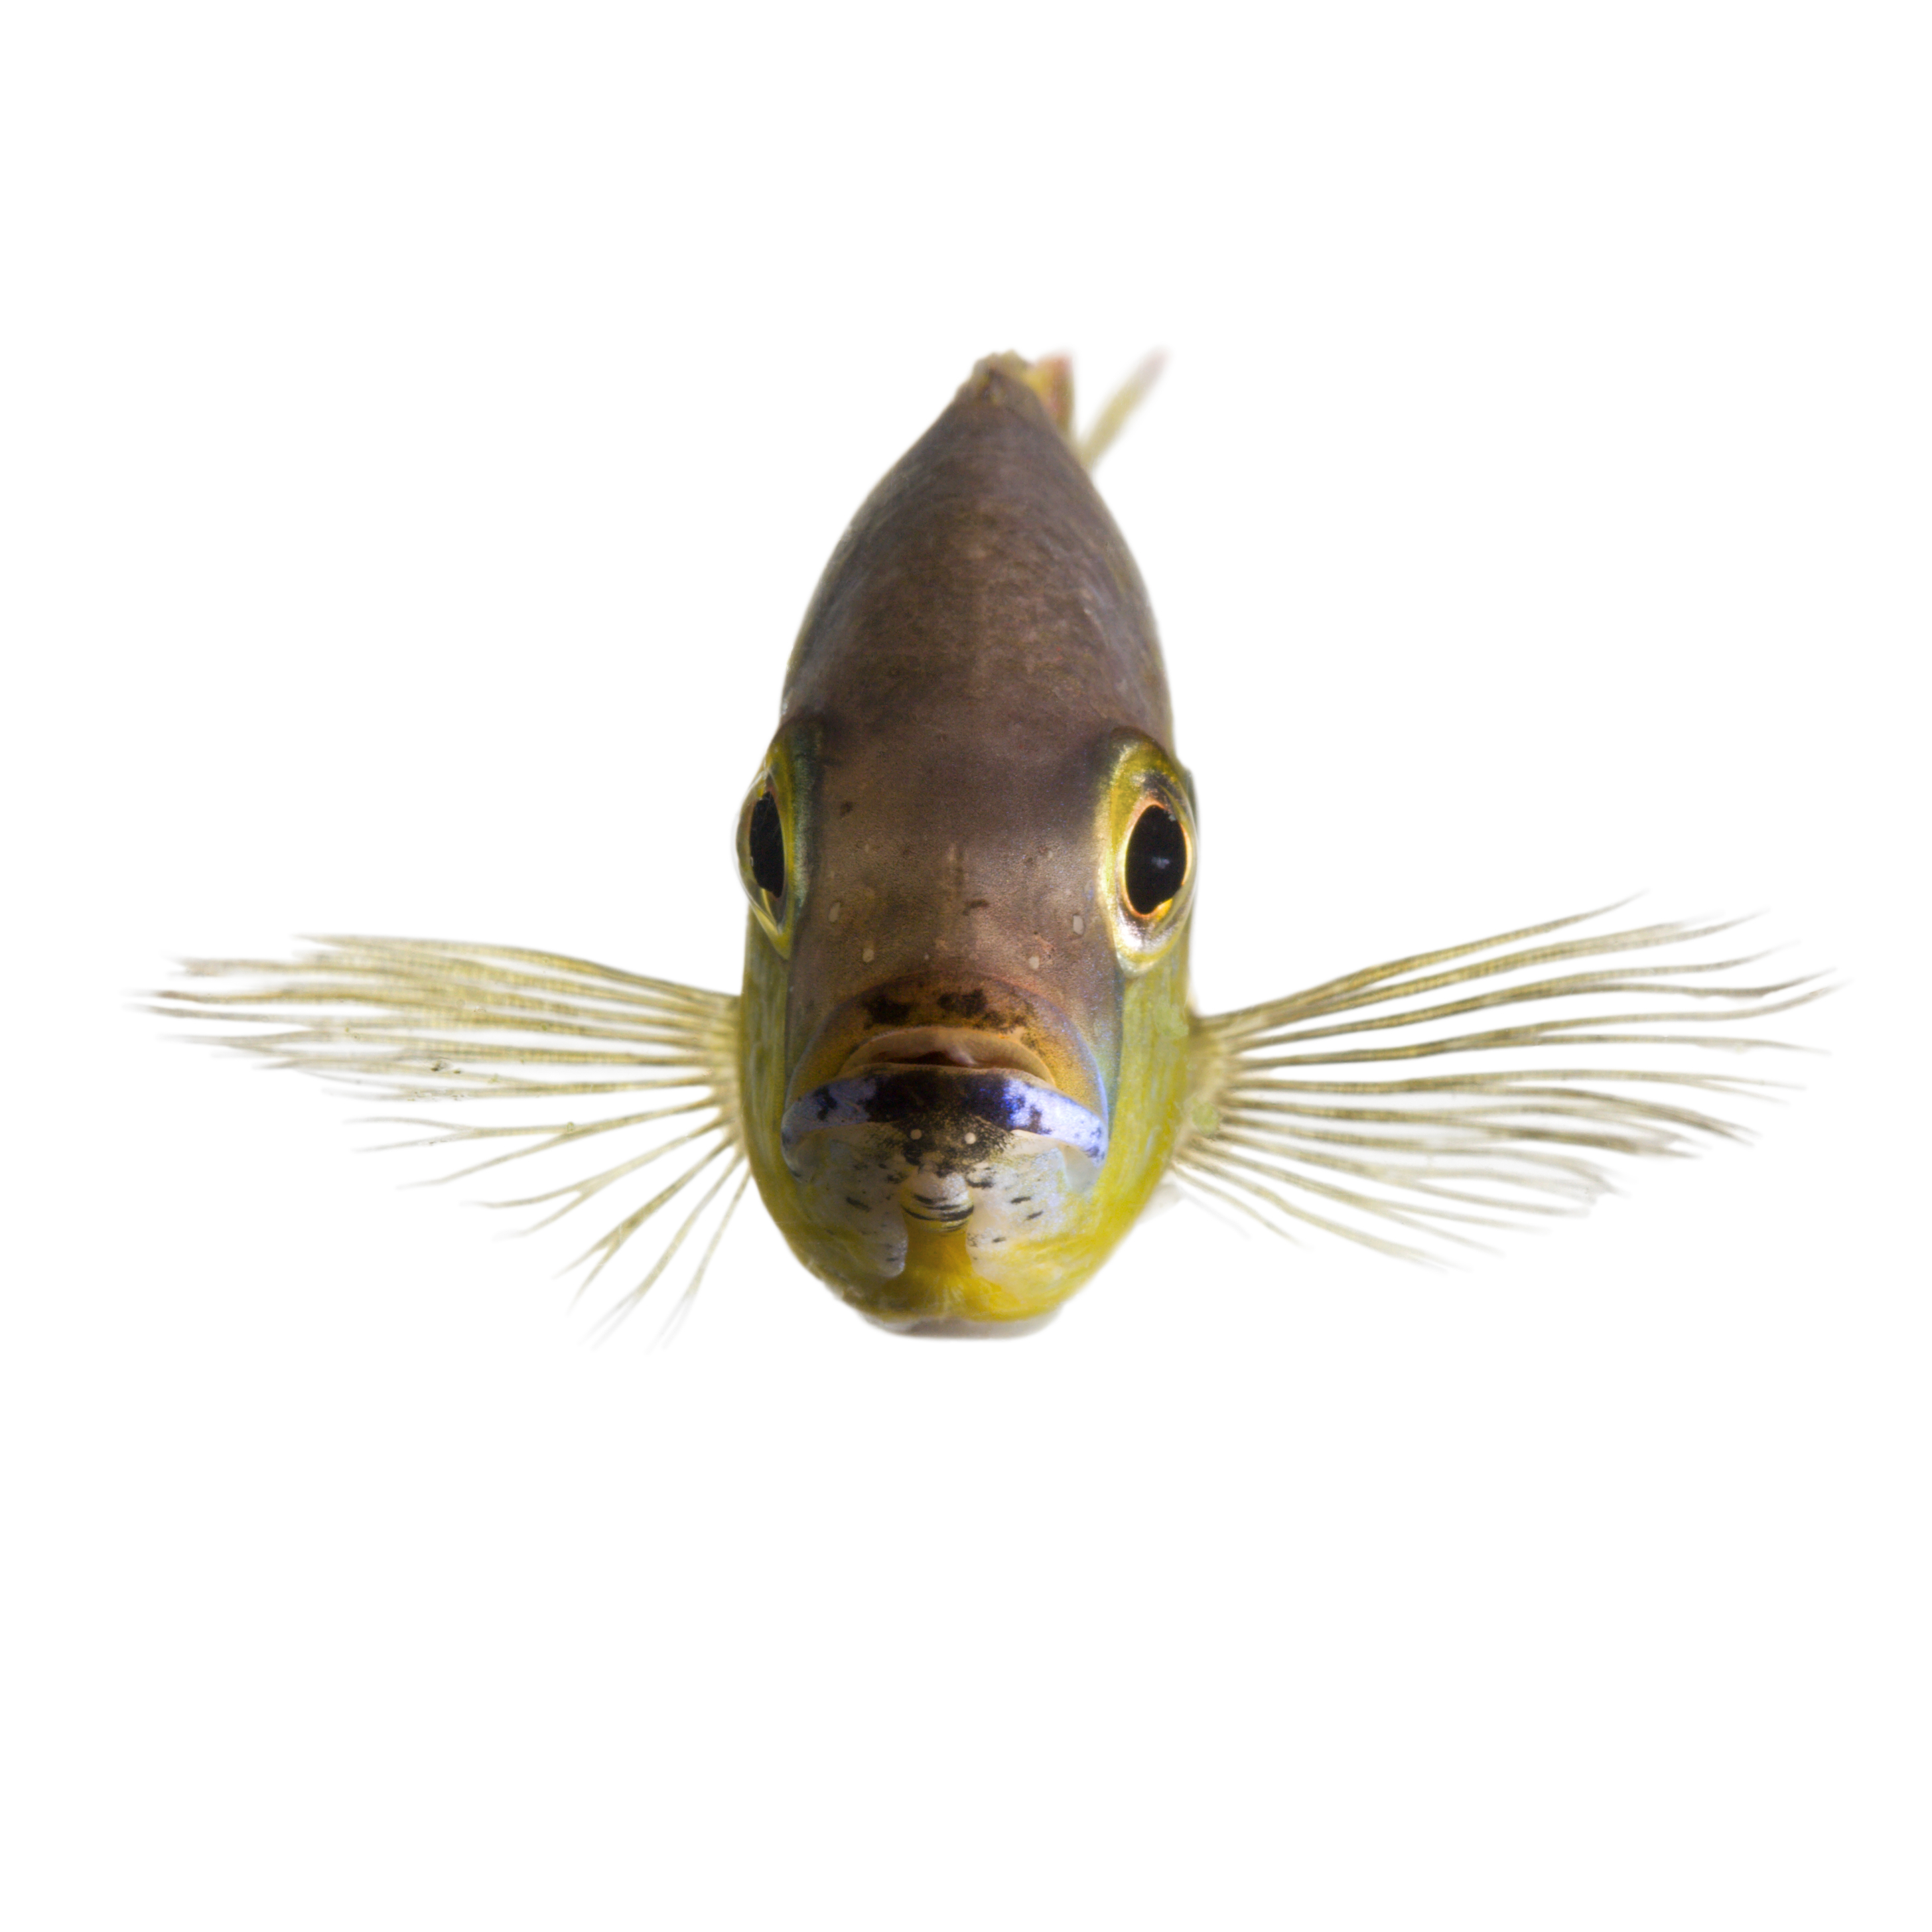 NationalGeographic_1130317 fish.png